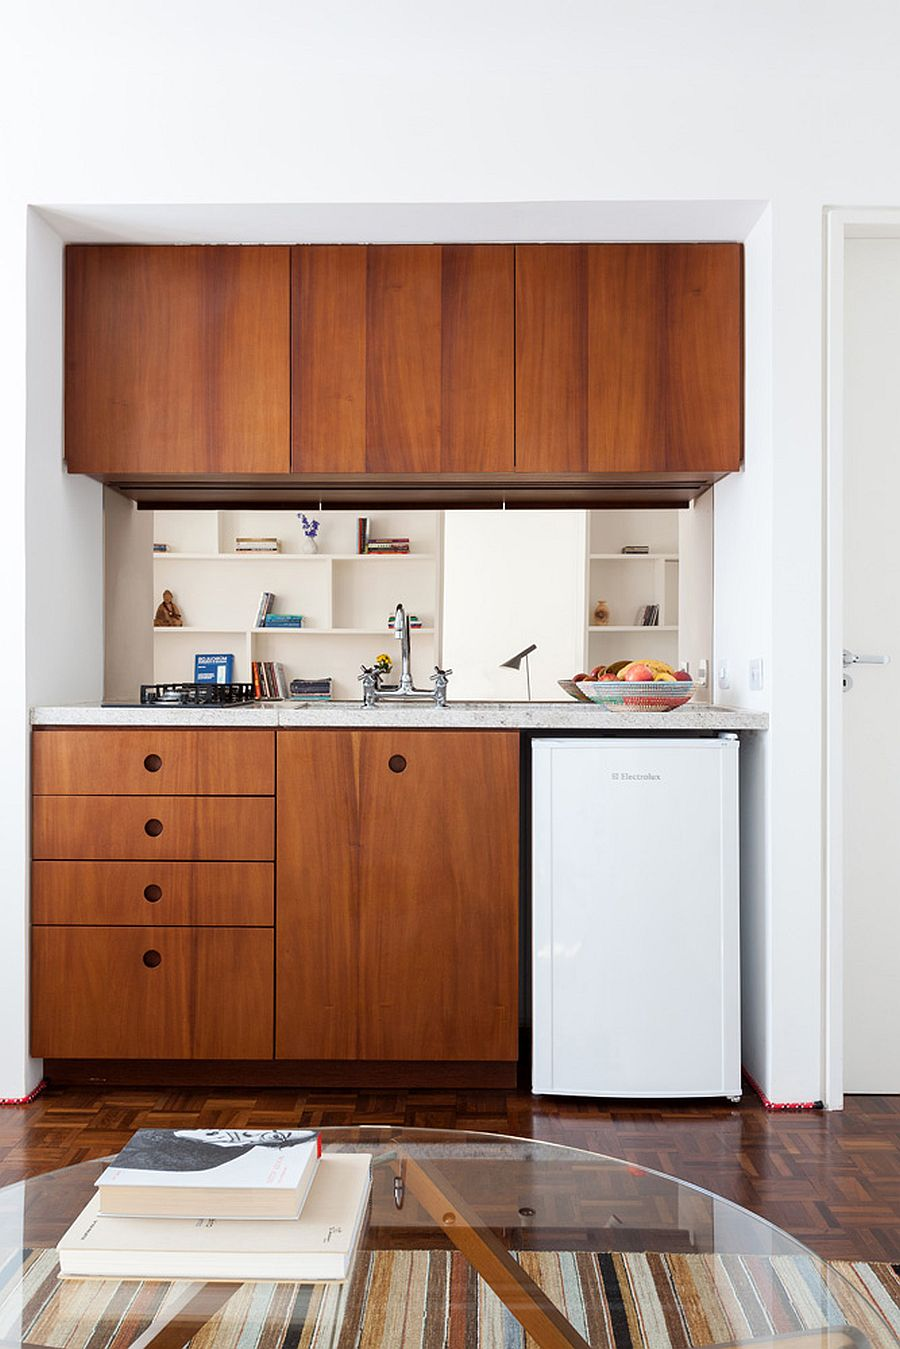 Creating that perfect ultra-small kitchen inside the tiny studio apartment with modern, space-savvy appeal